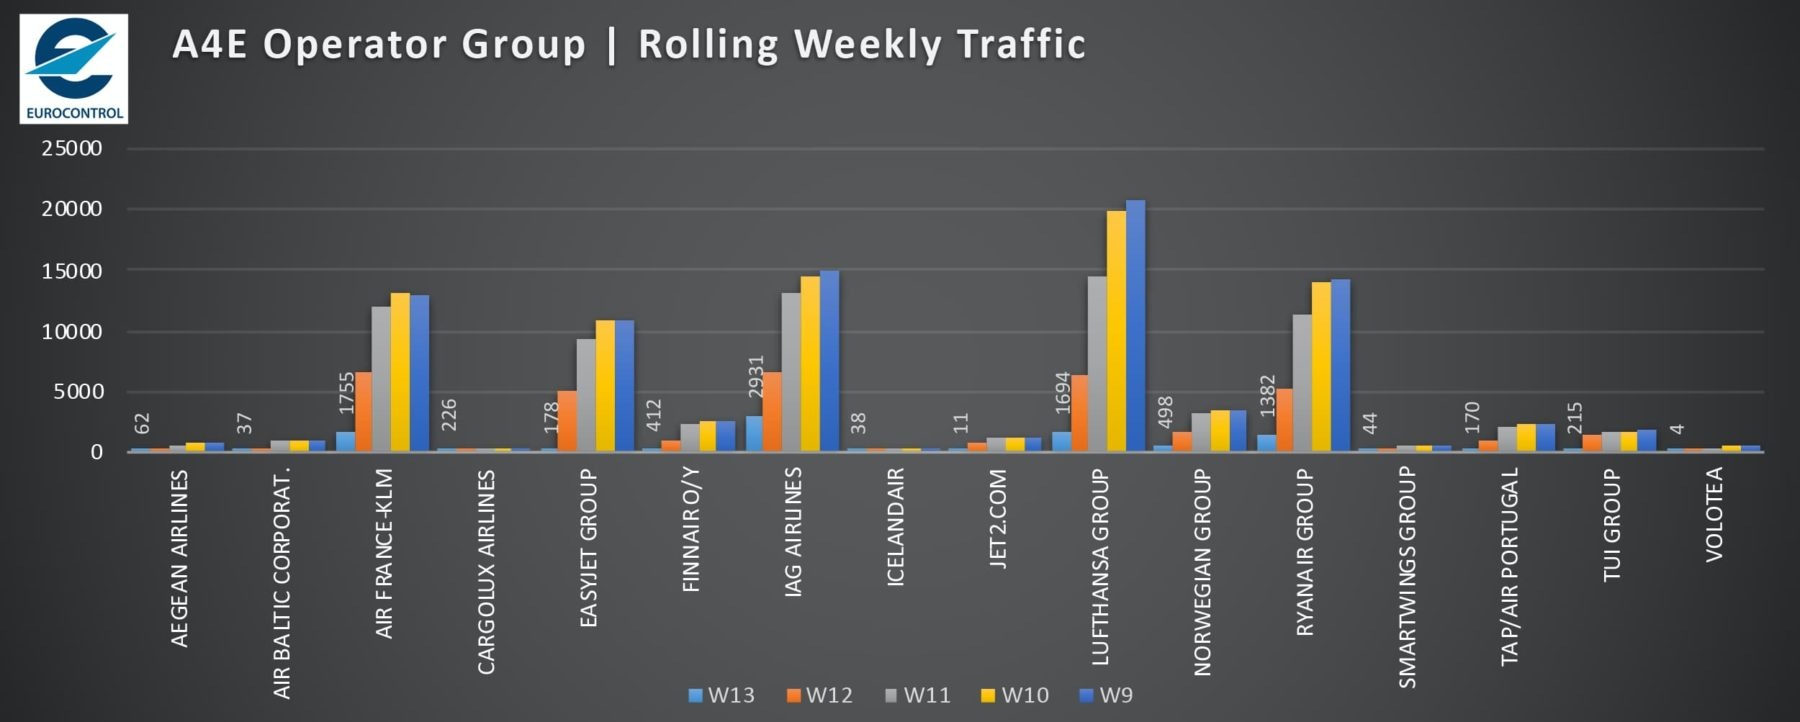 A4E Operator Group, Rolling Weekly Traffic